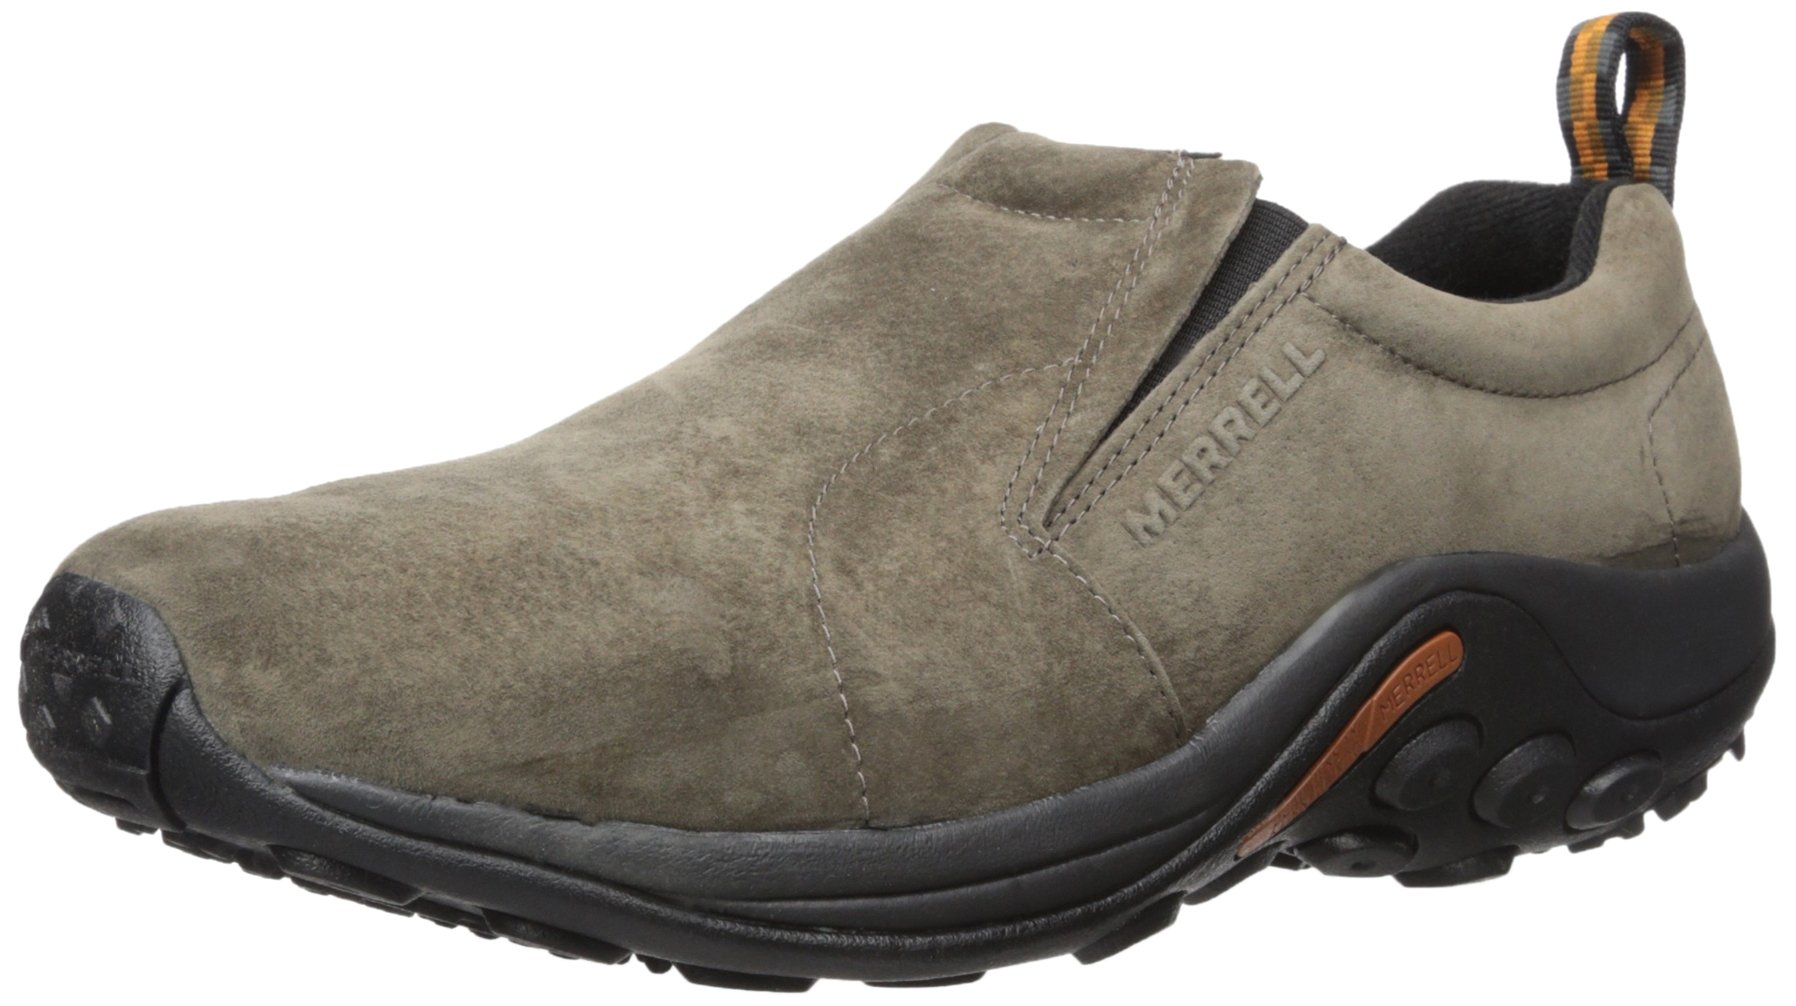 Merrell Men's Jungle Moc Slip-On Shoe,Gunsmoke,11 M US by Merrell